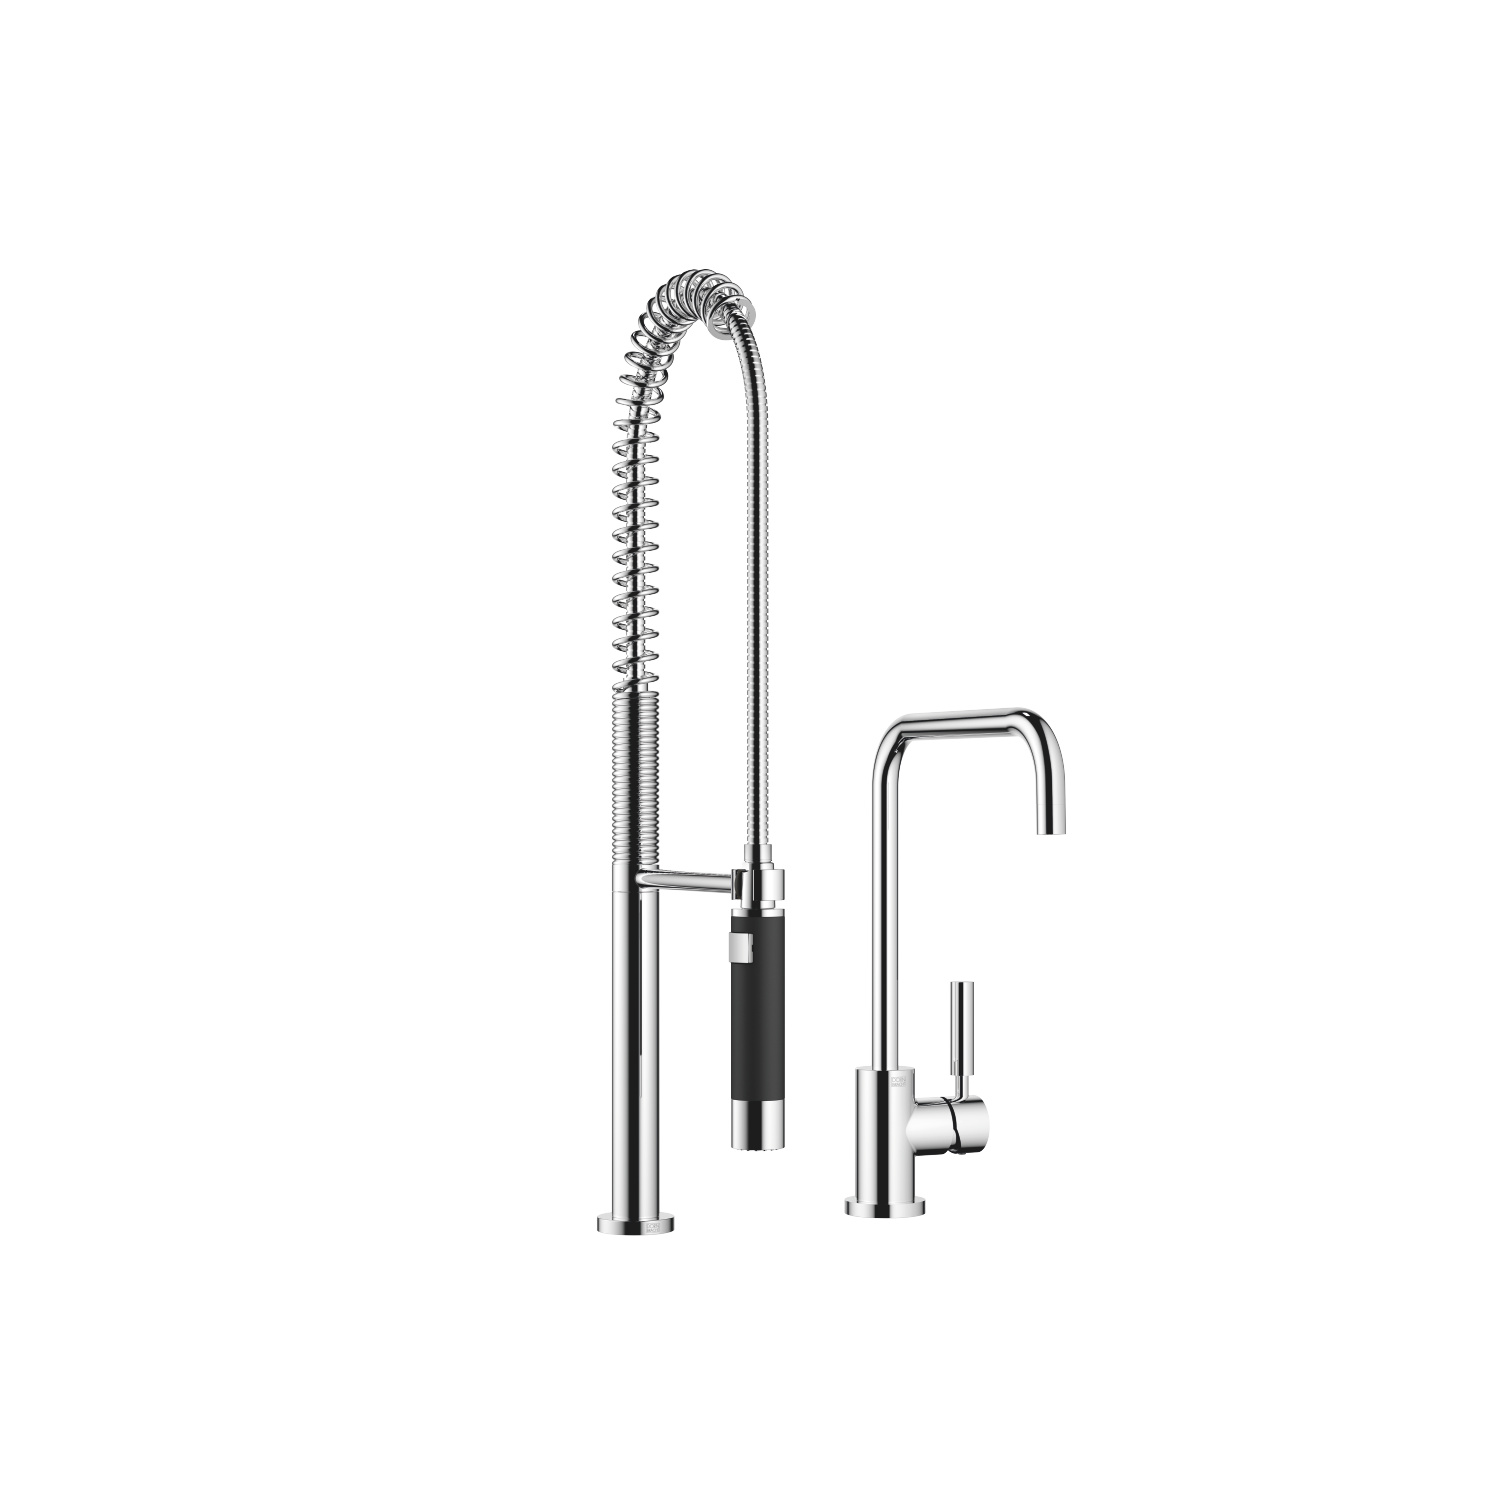 Single-lever mixer with profi spray set - polished chrome - 33 820 625-00 + 27 789 970-00